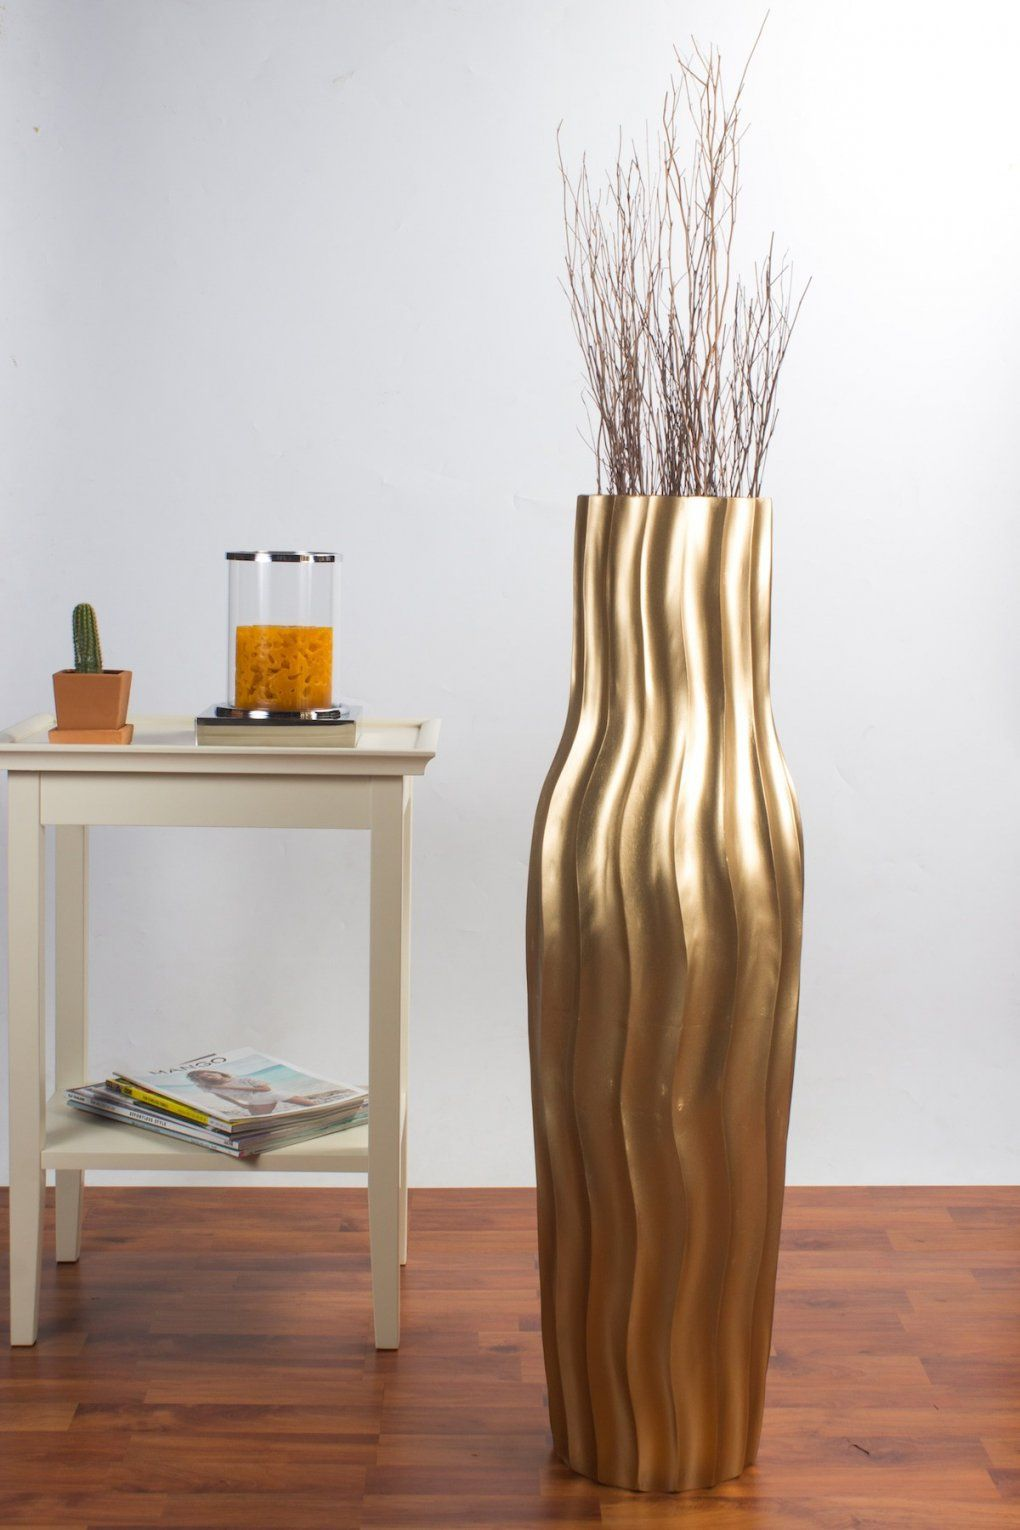 Rustic Floor Vase Pier One Vases Very Tall Floor Vases Decorating von Very Tall Floor Vase Photo